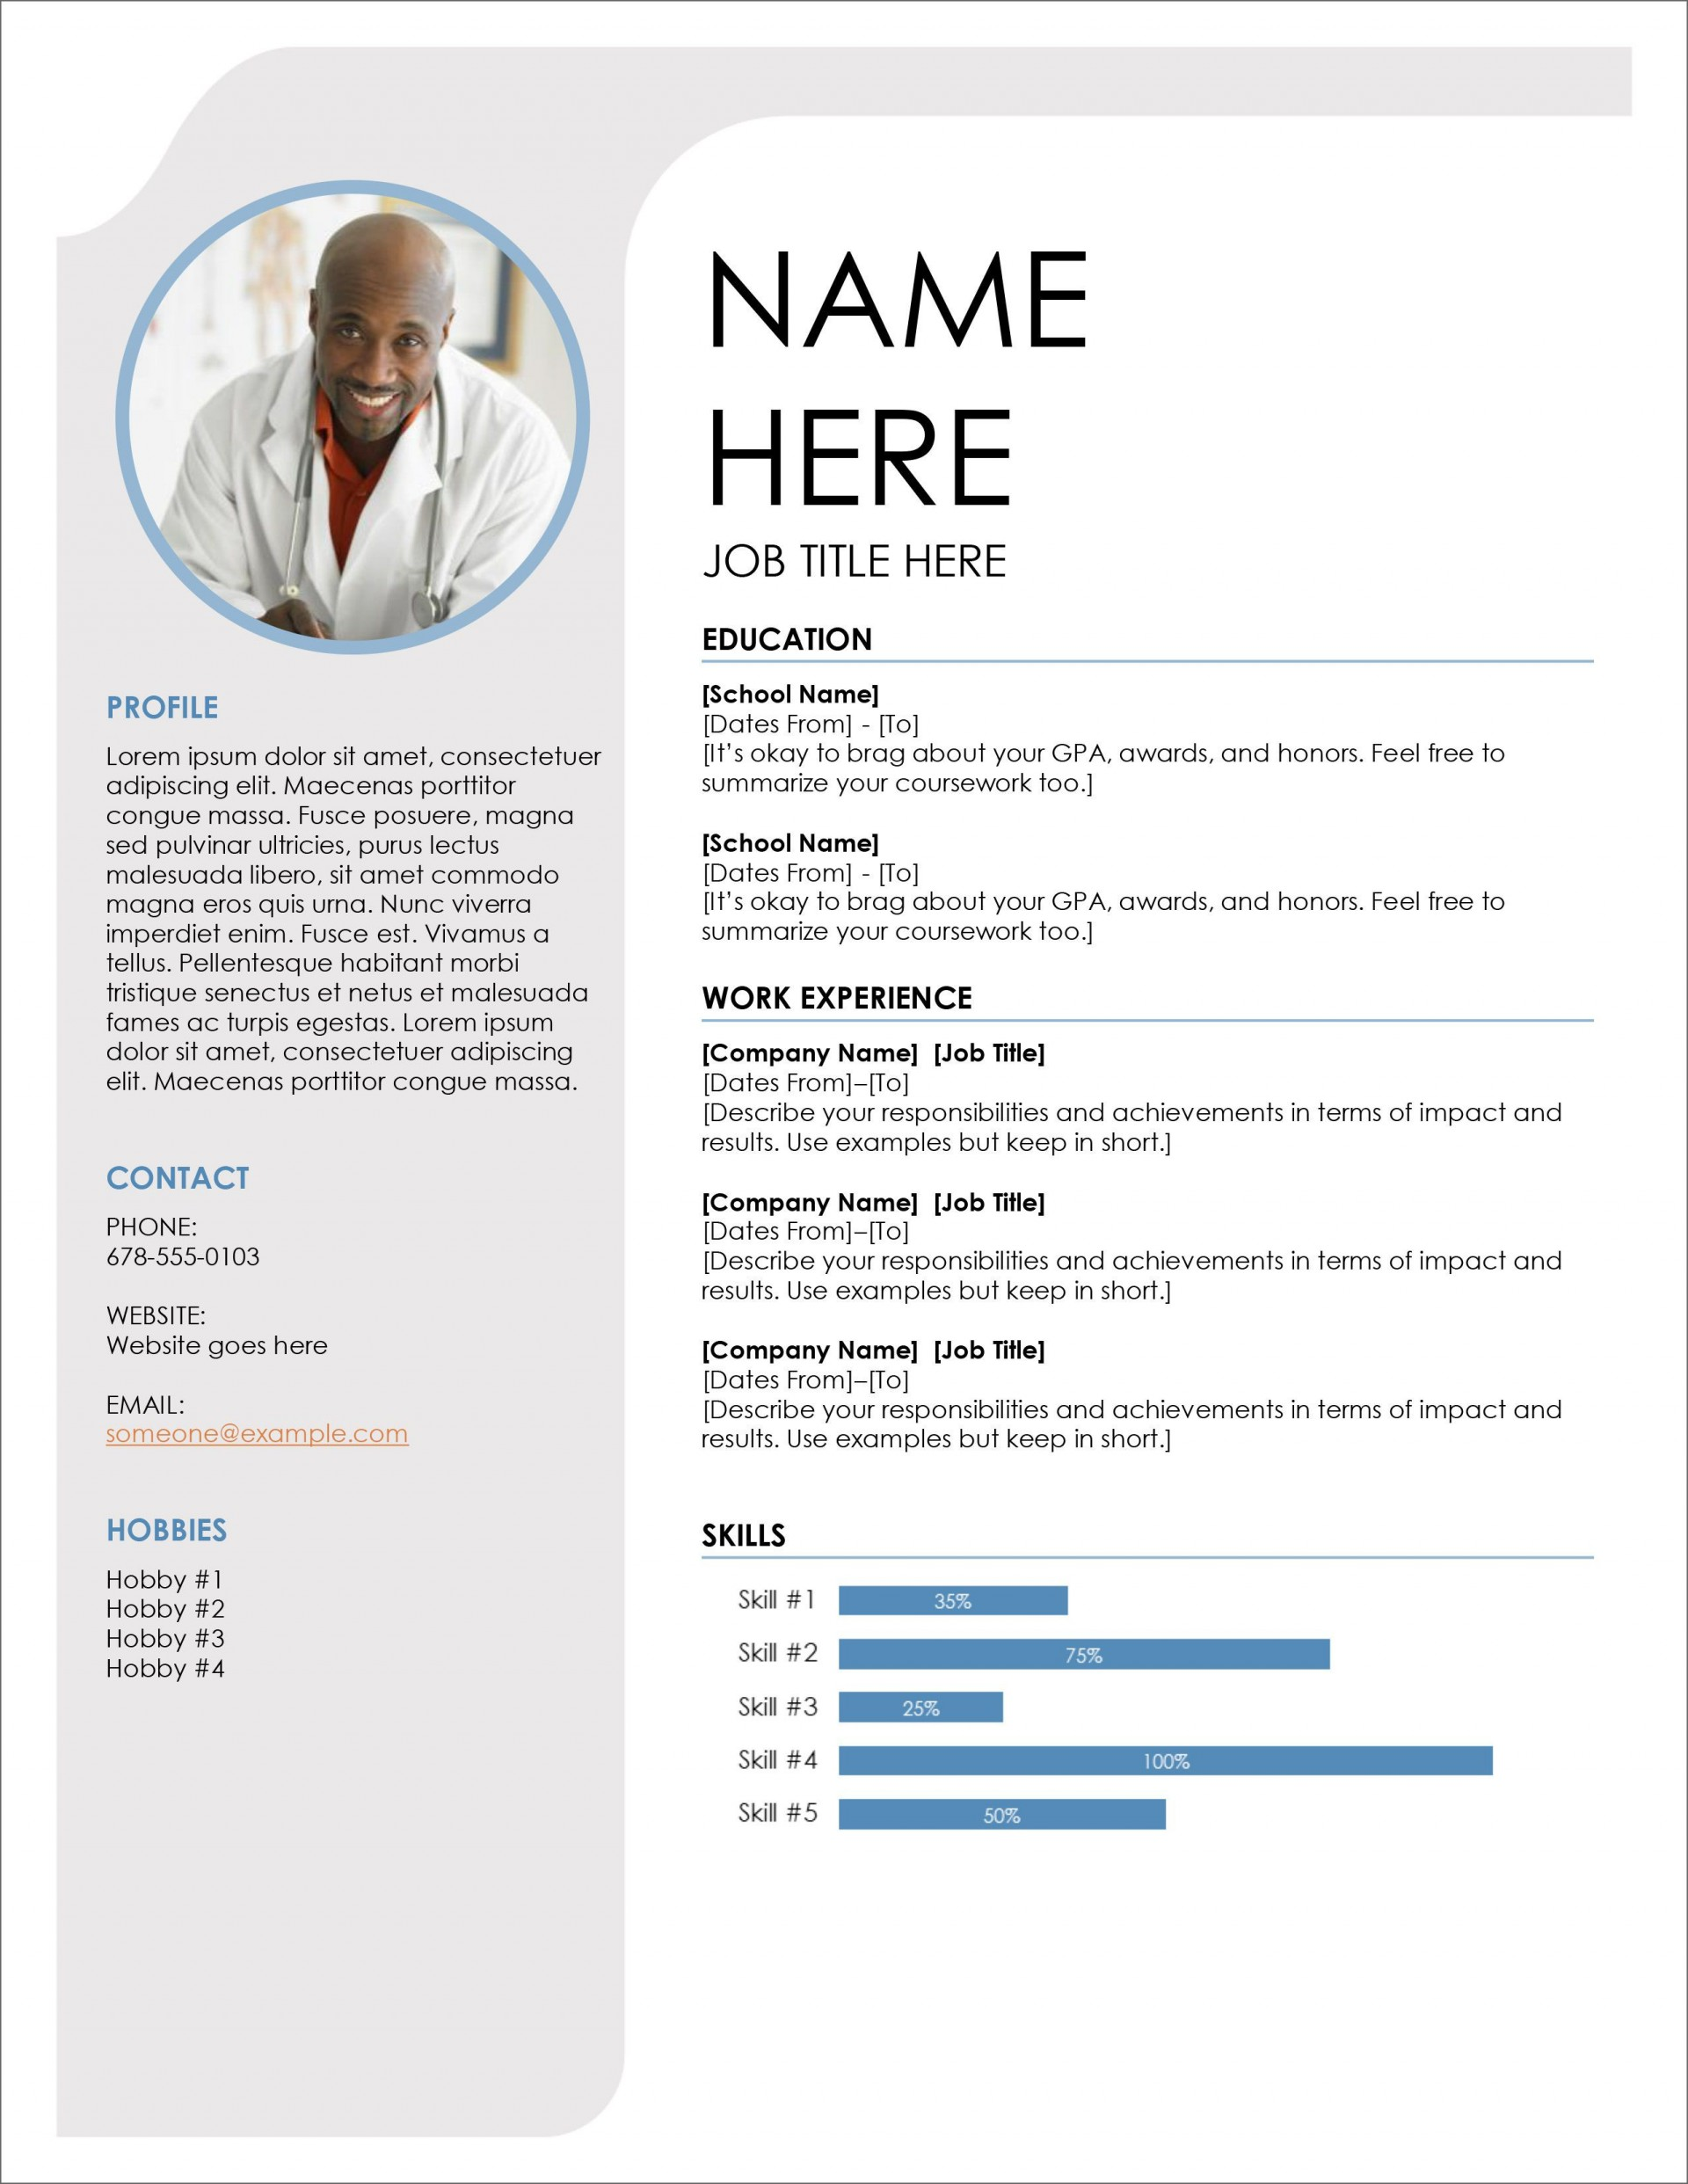 006 Fearsome Professional Resume Template Word Free Download Idea  Cv 2020 With Photo1920